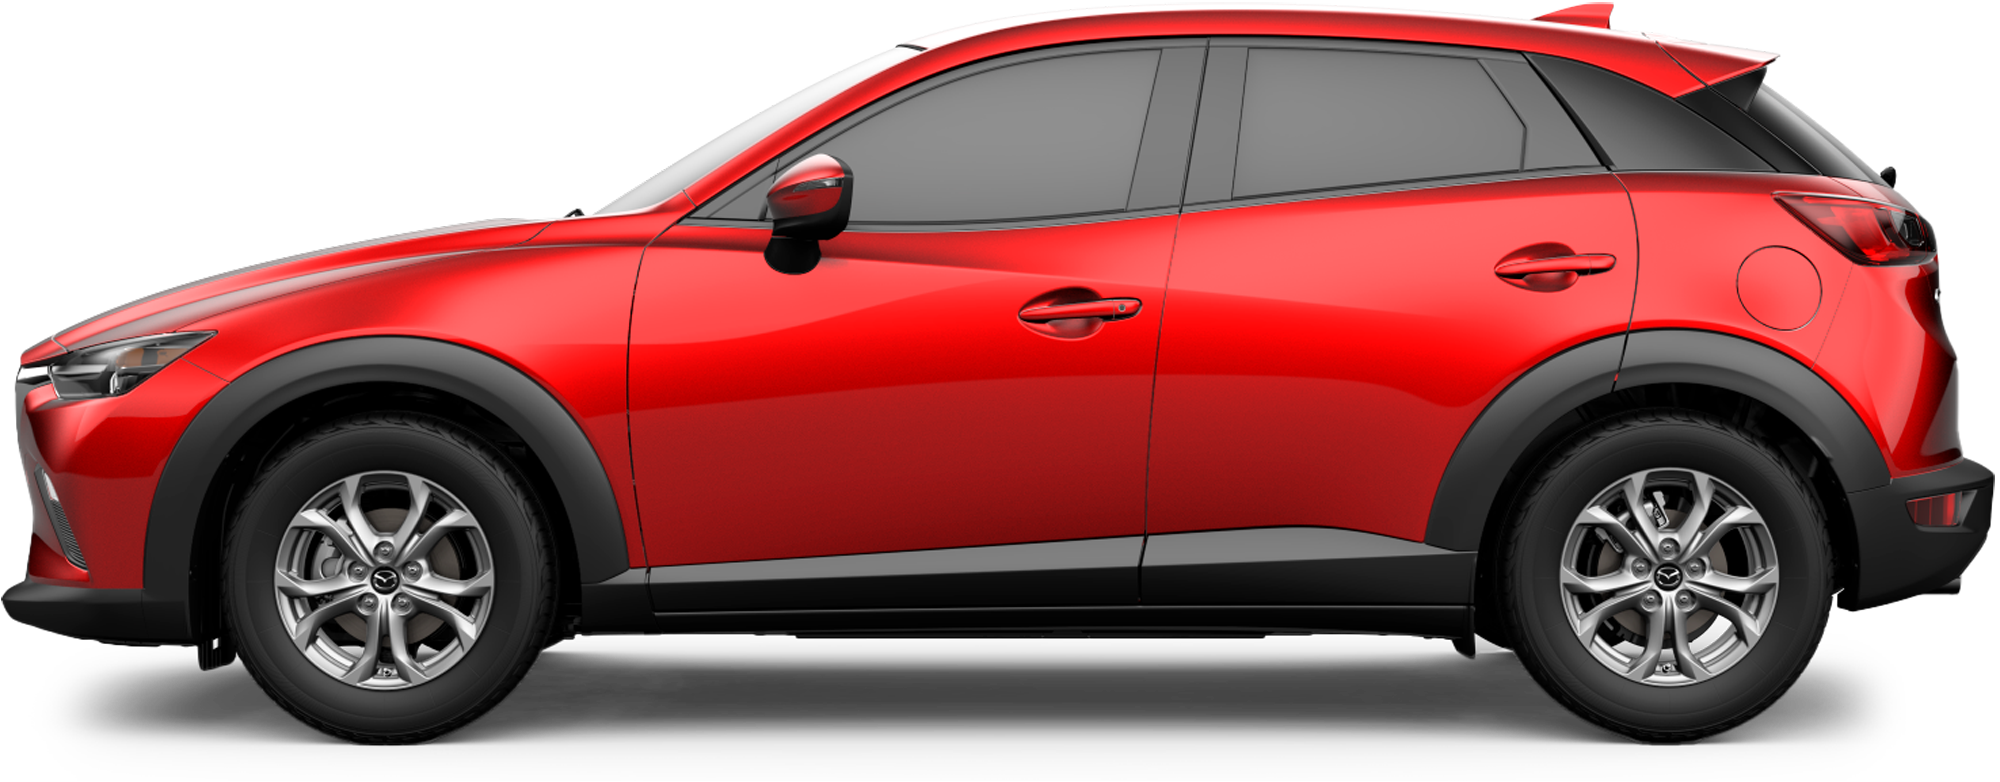 http://images.dealer.com/ddc/vehicles/2020/Mazda/CX-3/SUV/trim_Sport_11b198/perspective/side-left/2020_24.png